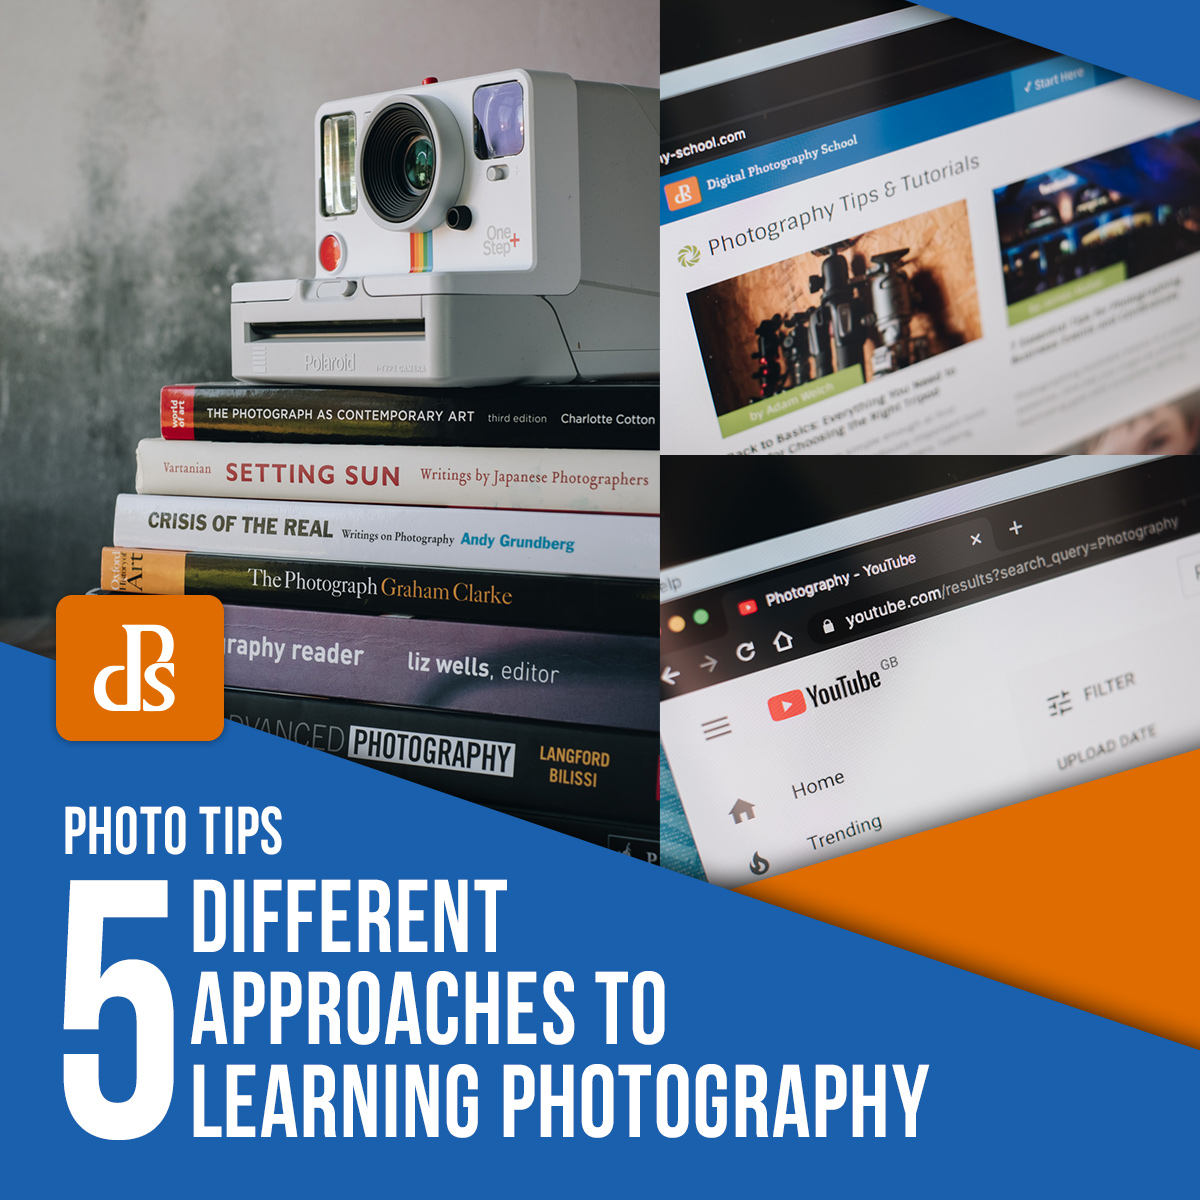 different approaches to learning photography